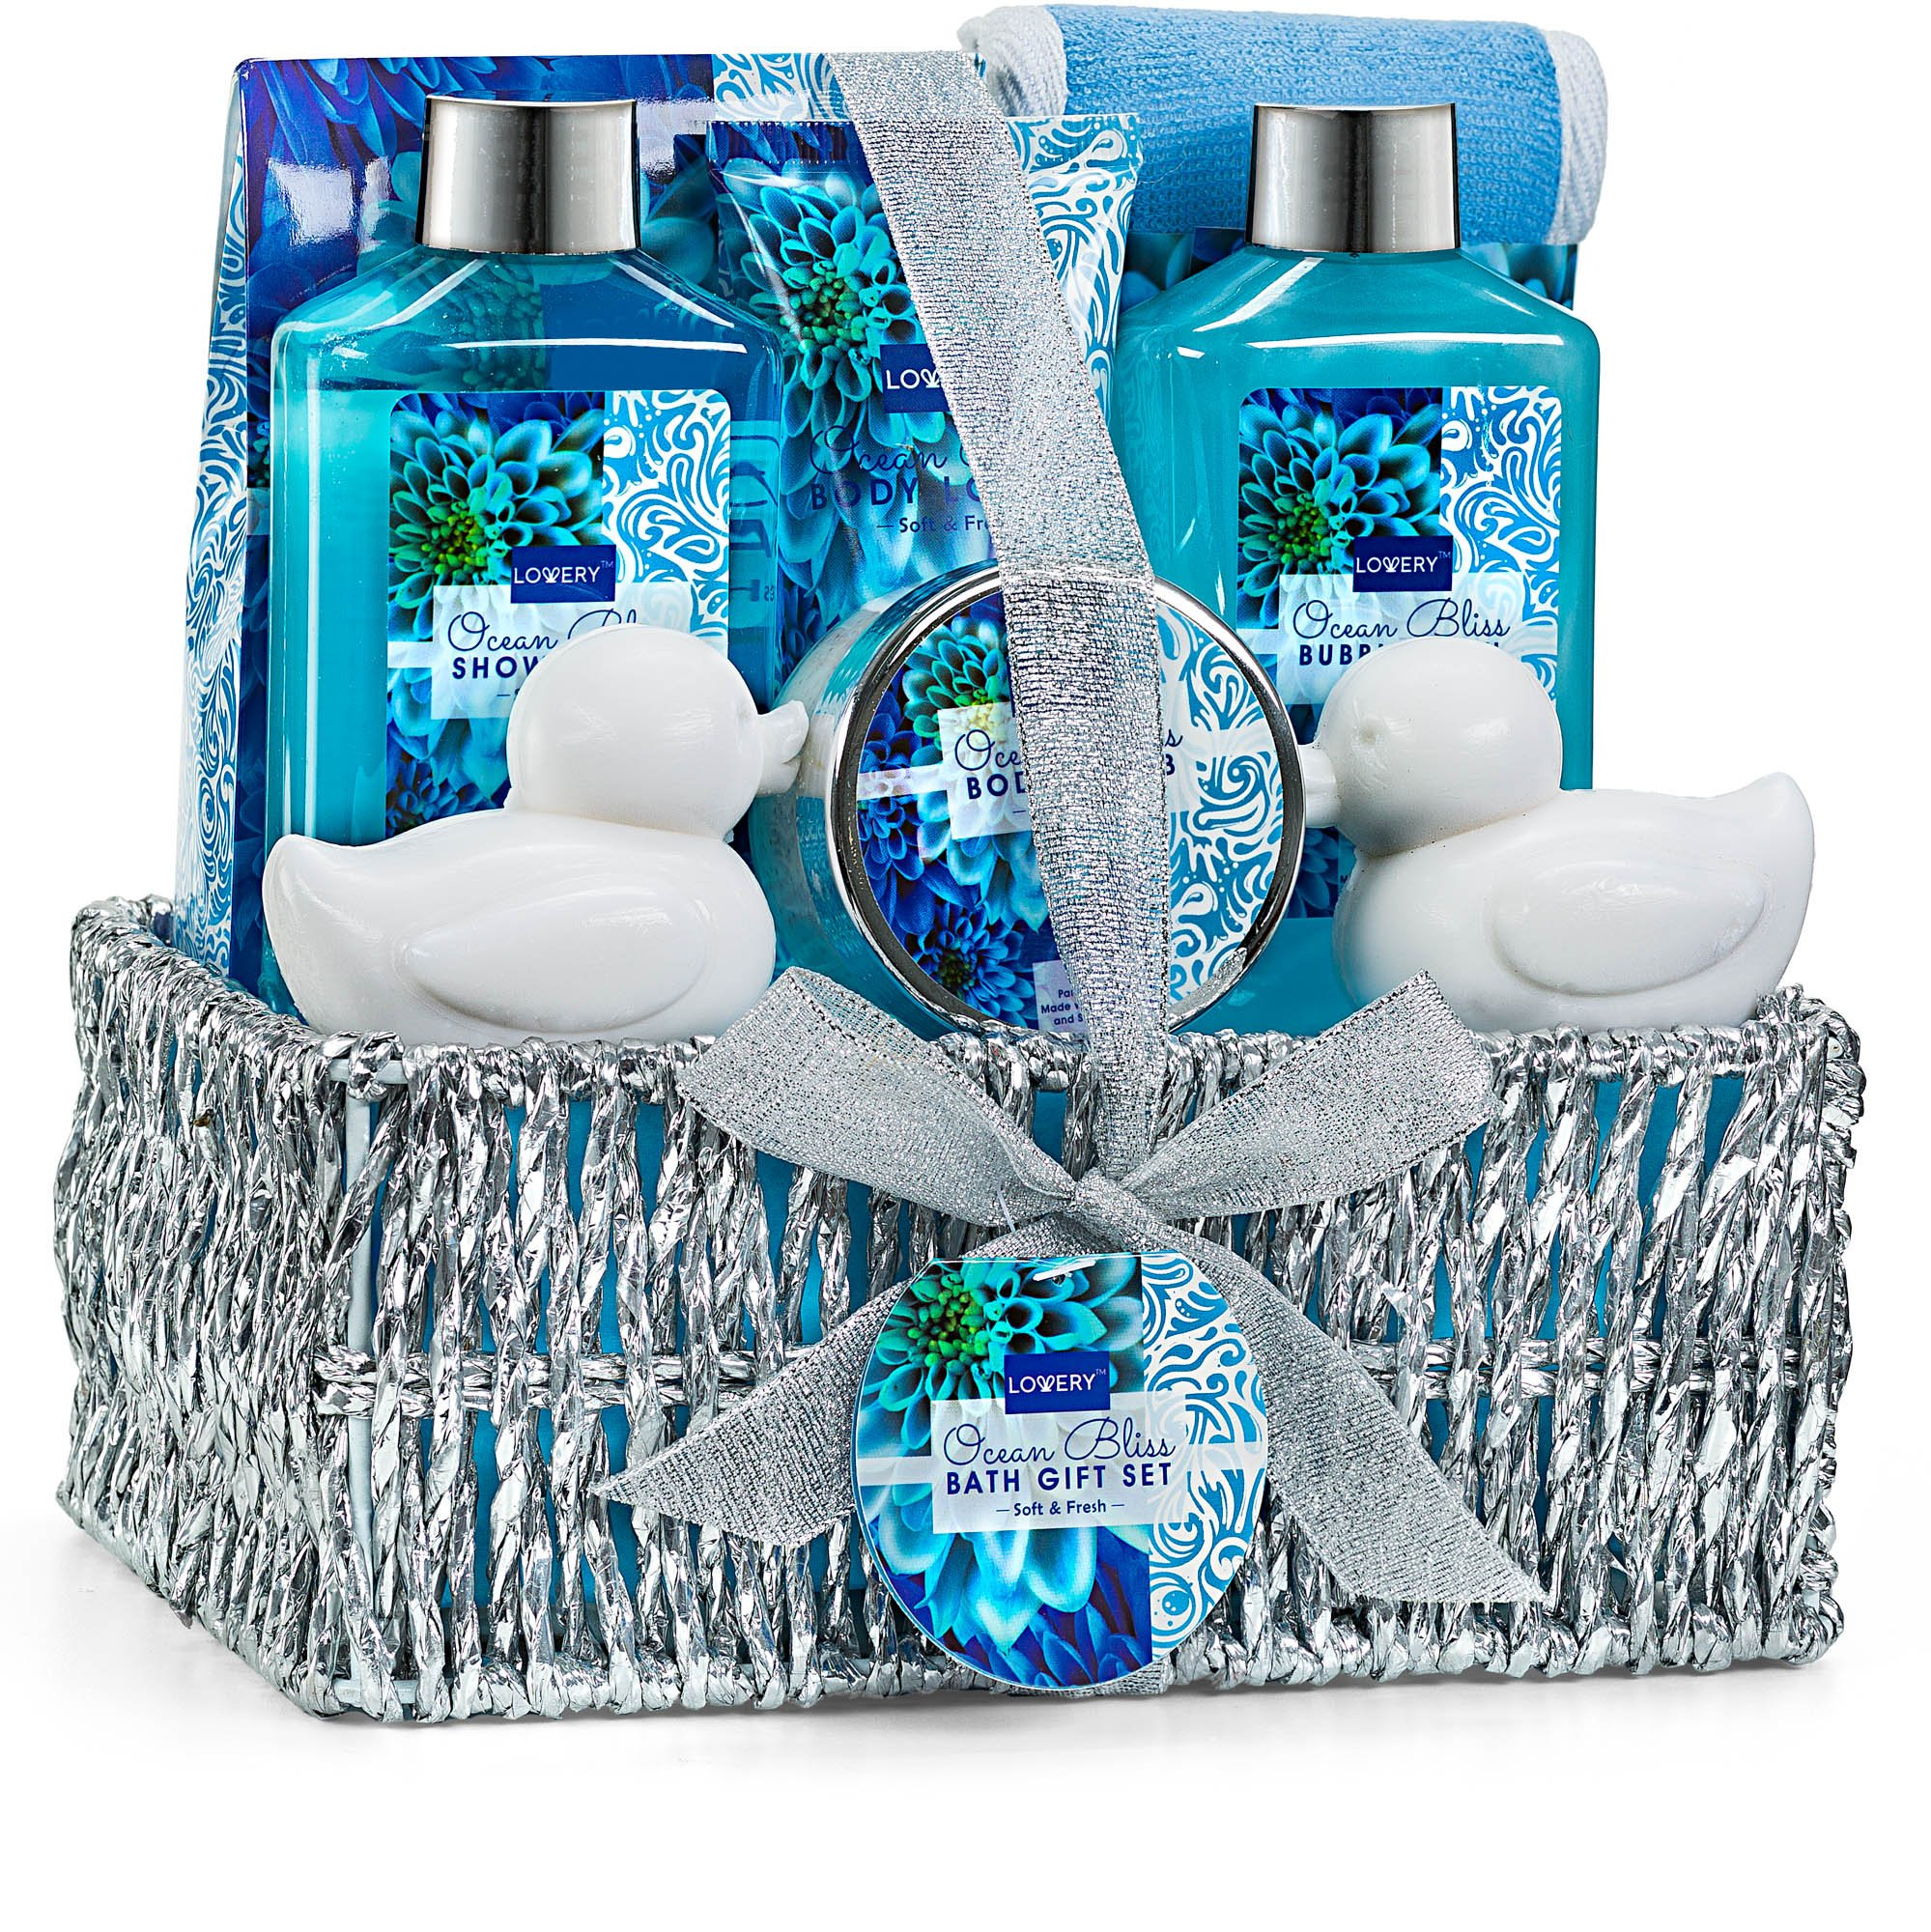 Amazon.com : Spa Gift Basket - Magnolia &Tuberose Fragrance ...